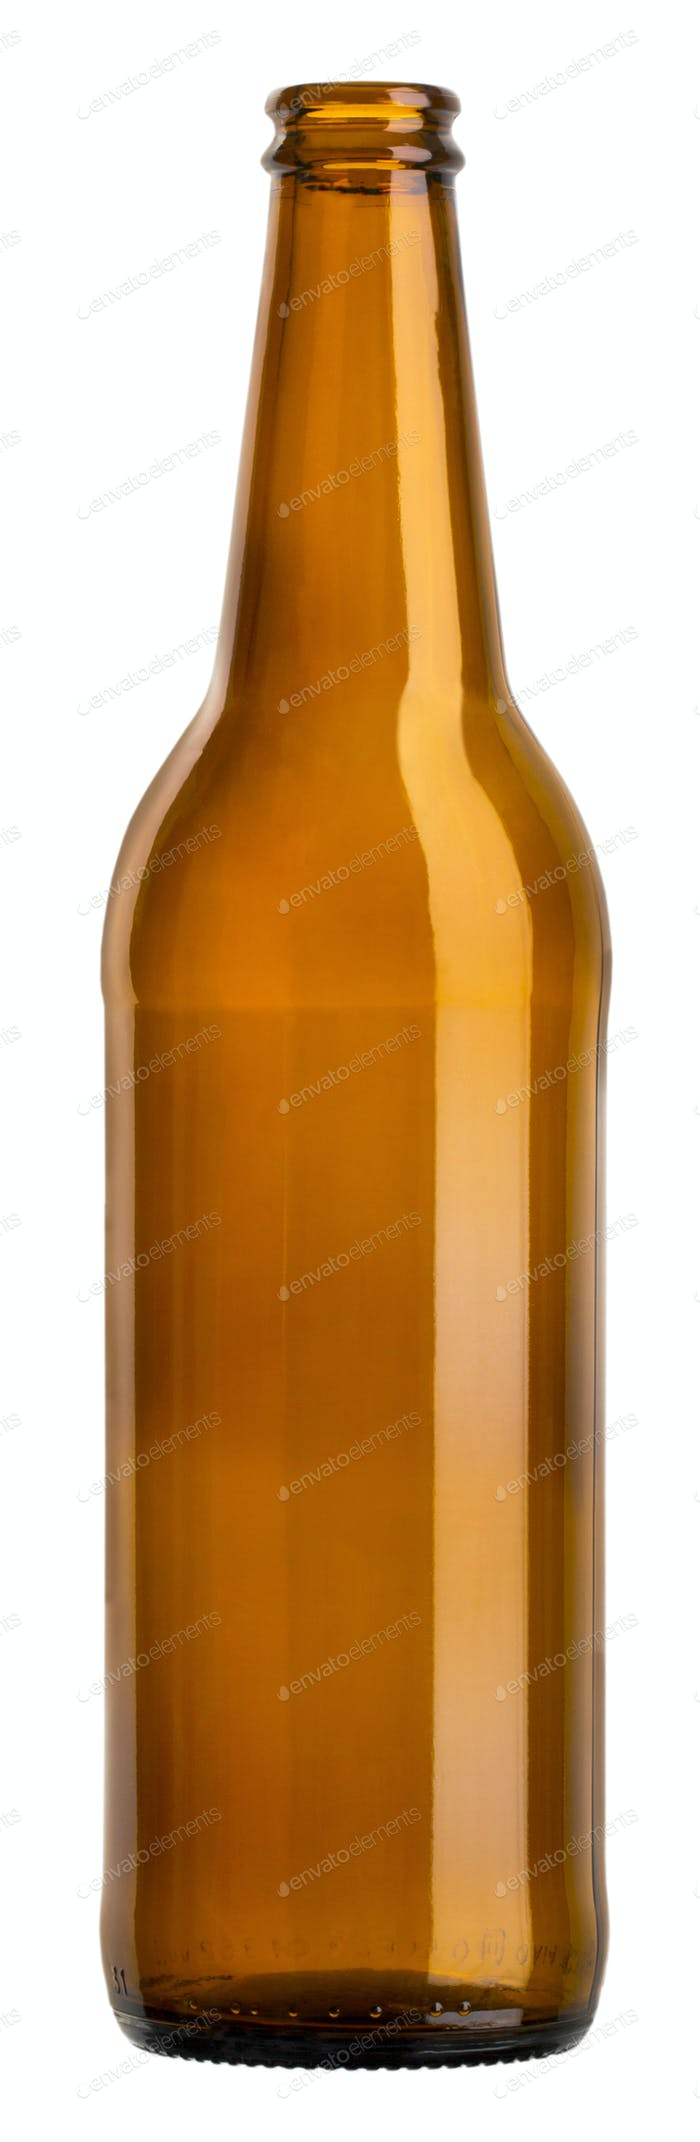 empty brown bottle